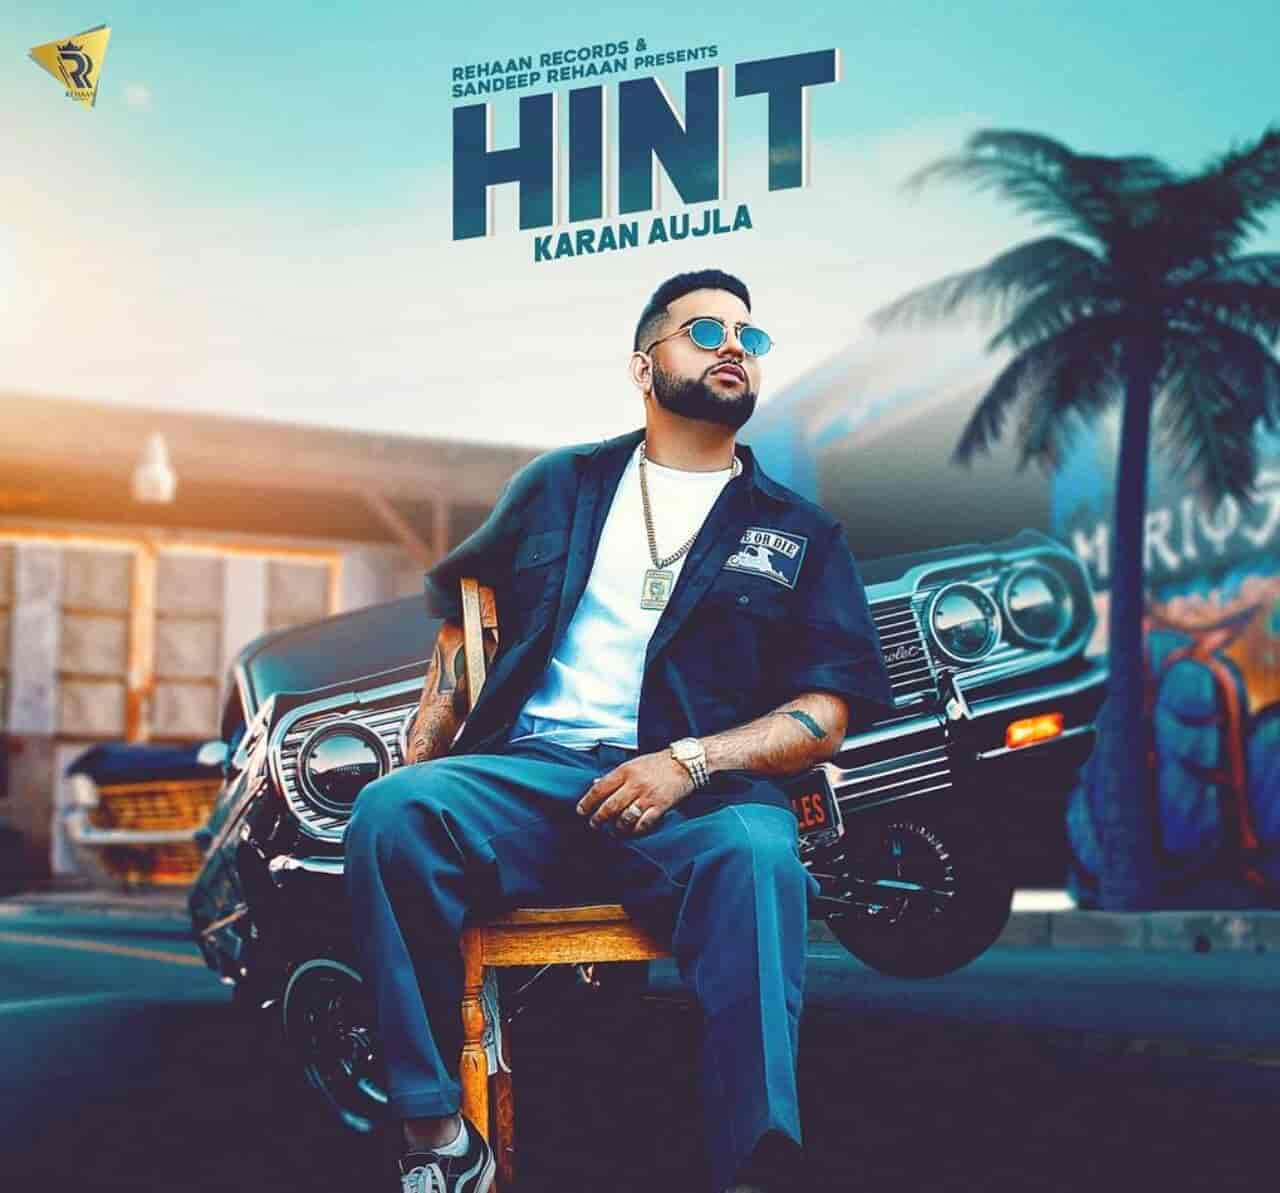 Hint Karan Aujla Song Images